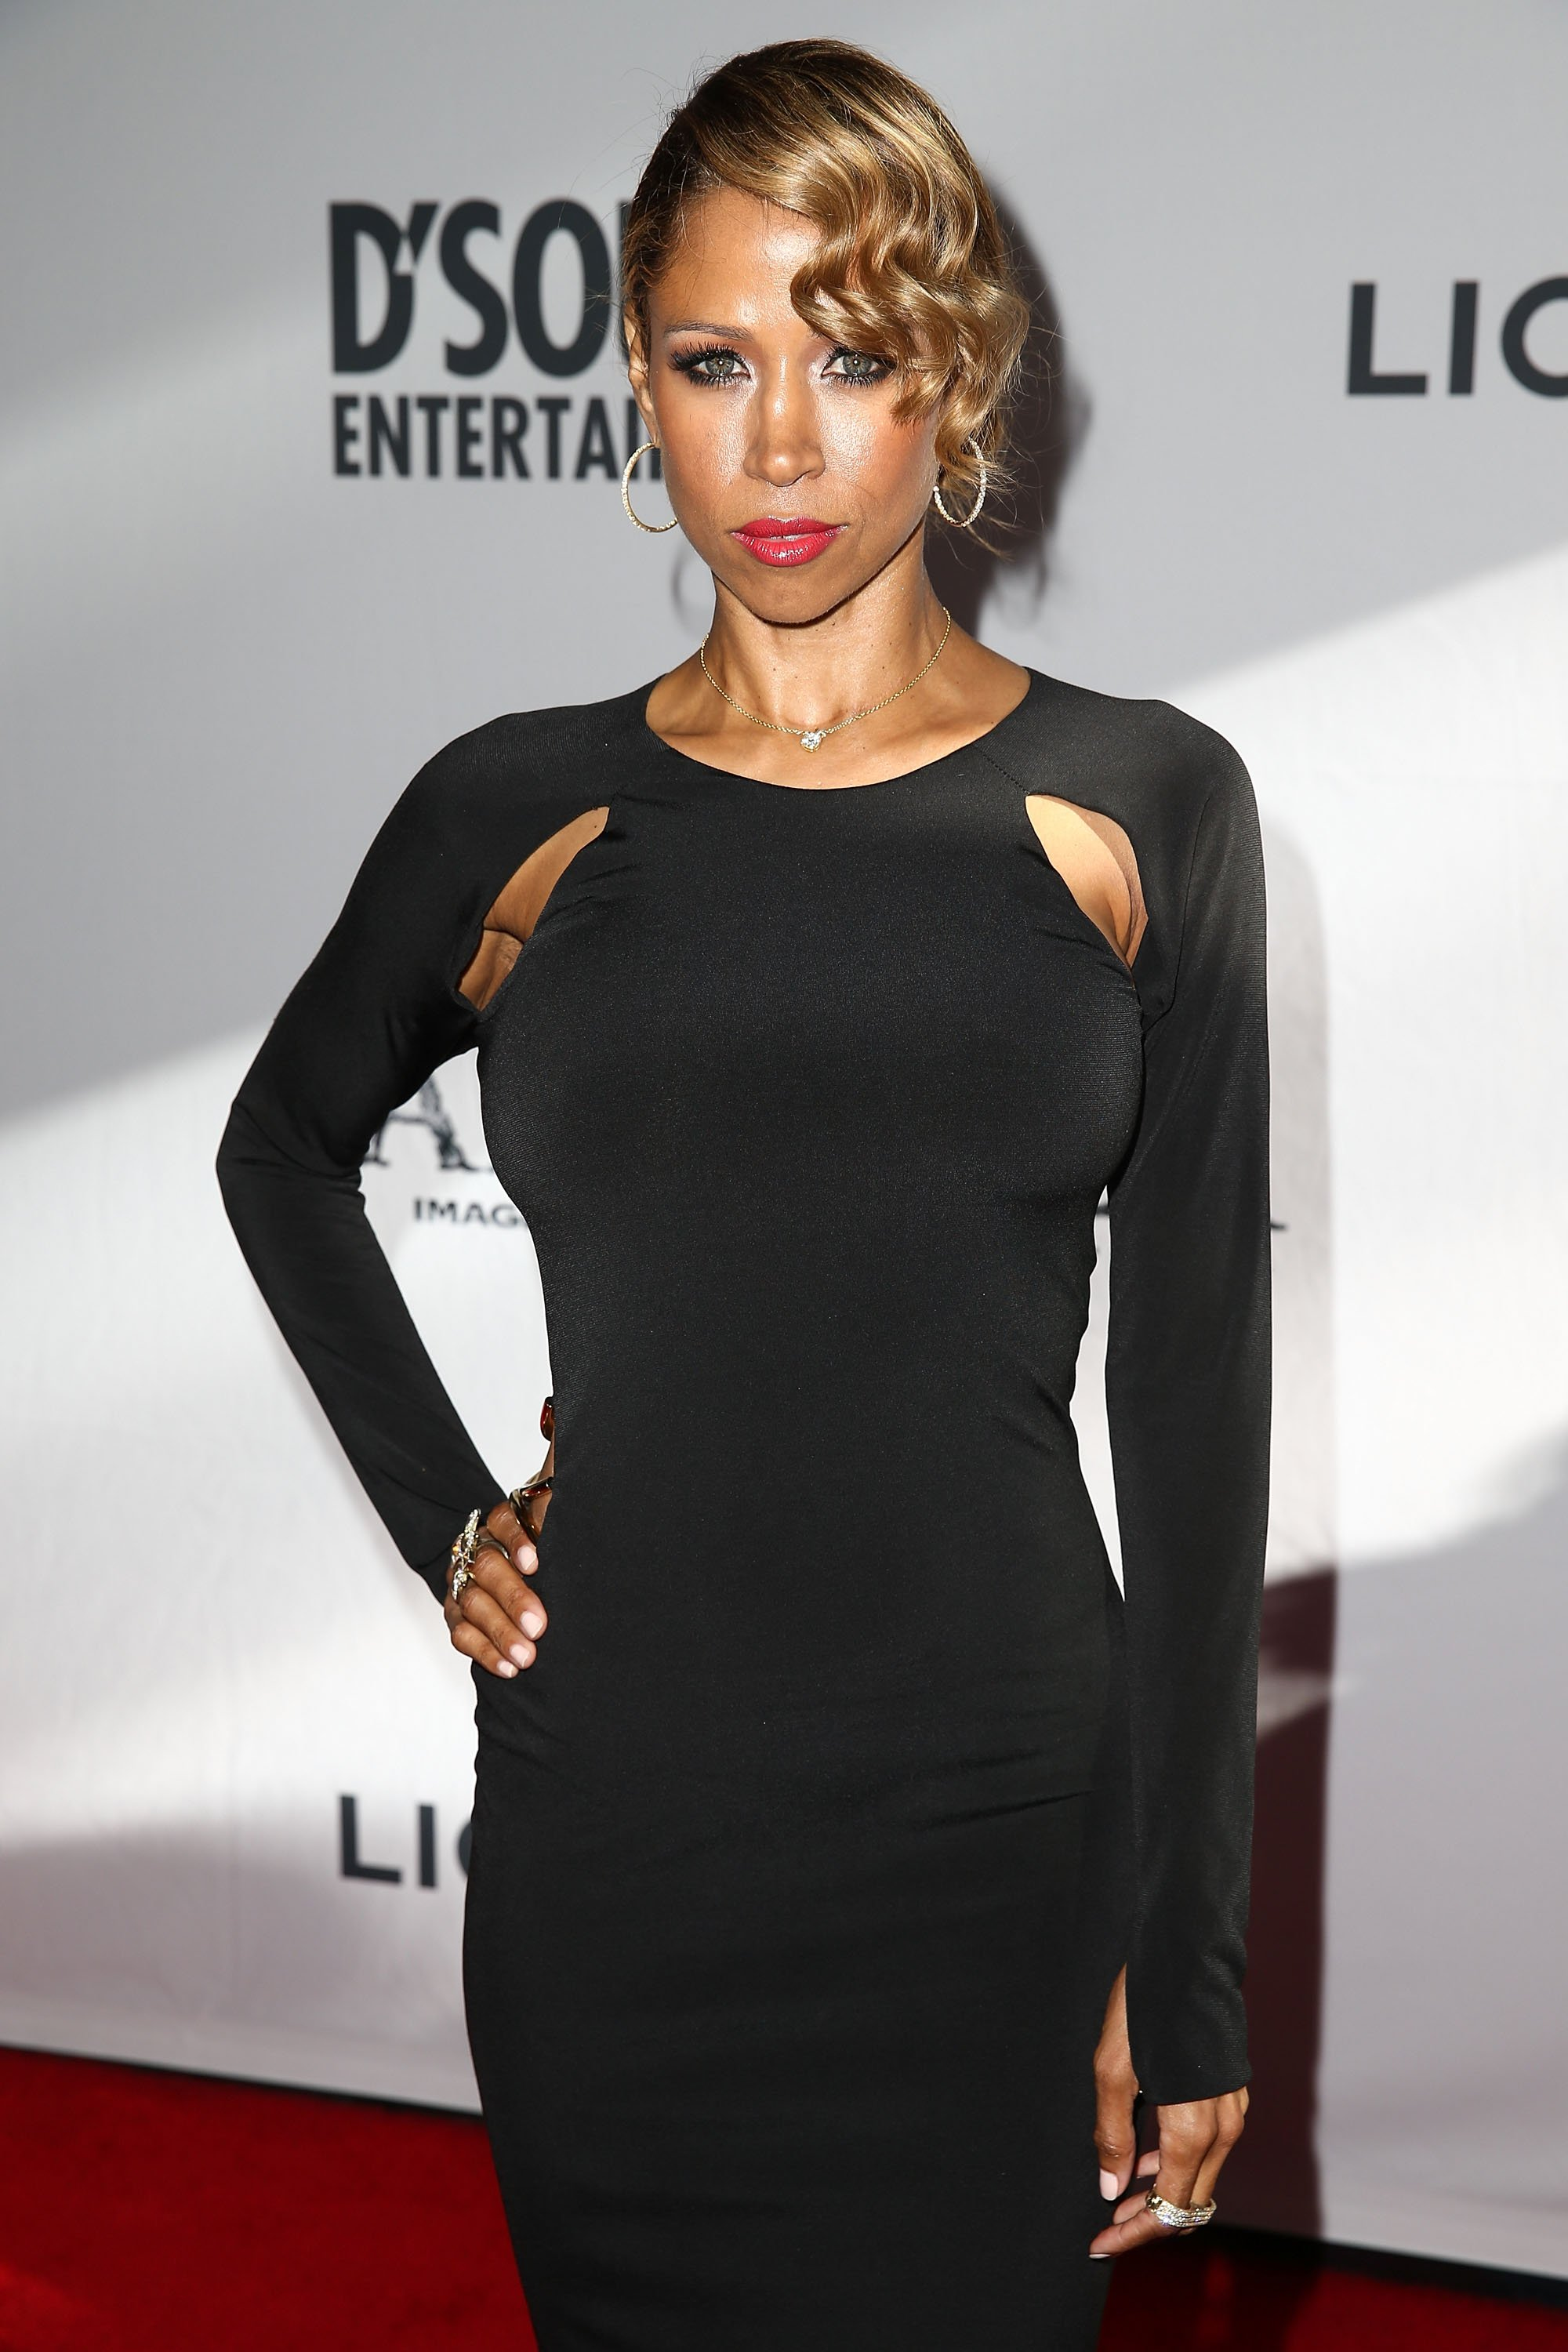 Stacey Dash at the premiere of 'America' in California on June 30, 2014 | Photo: Getty Images